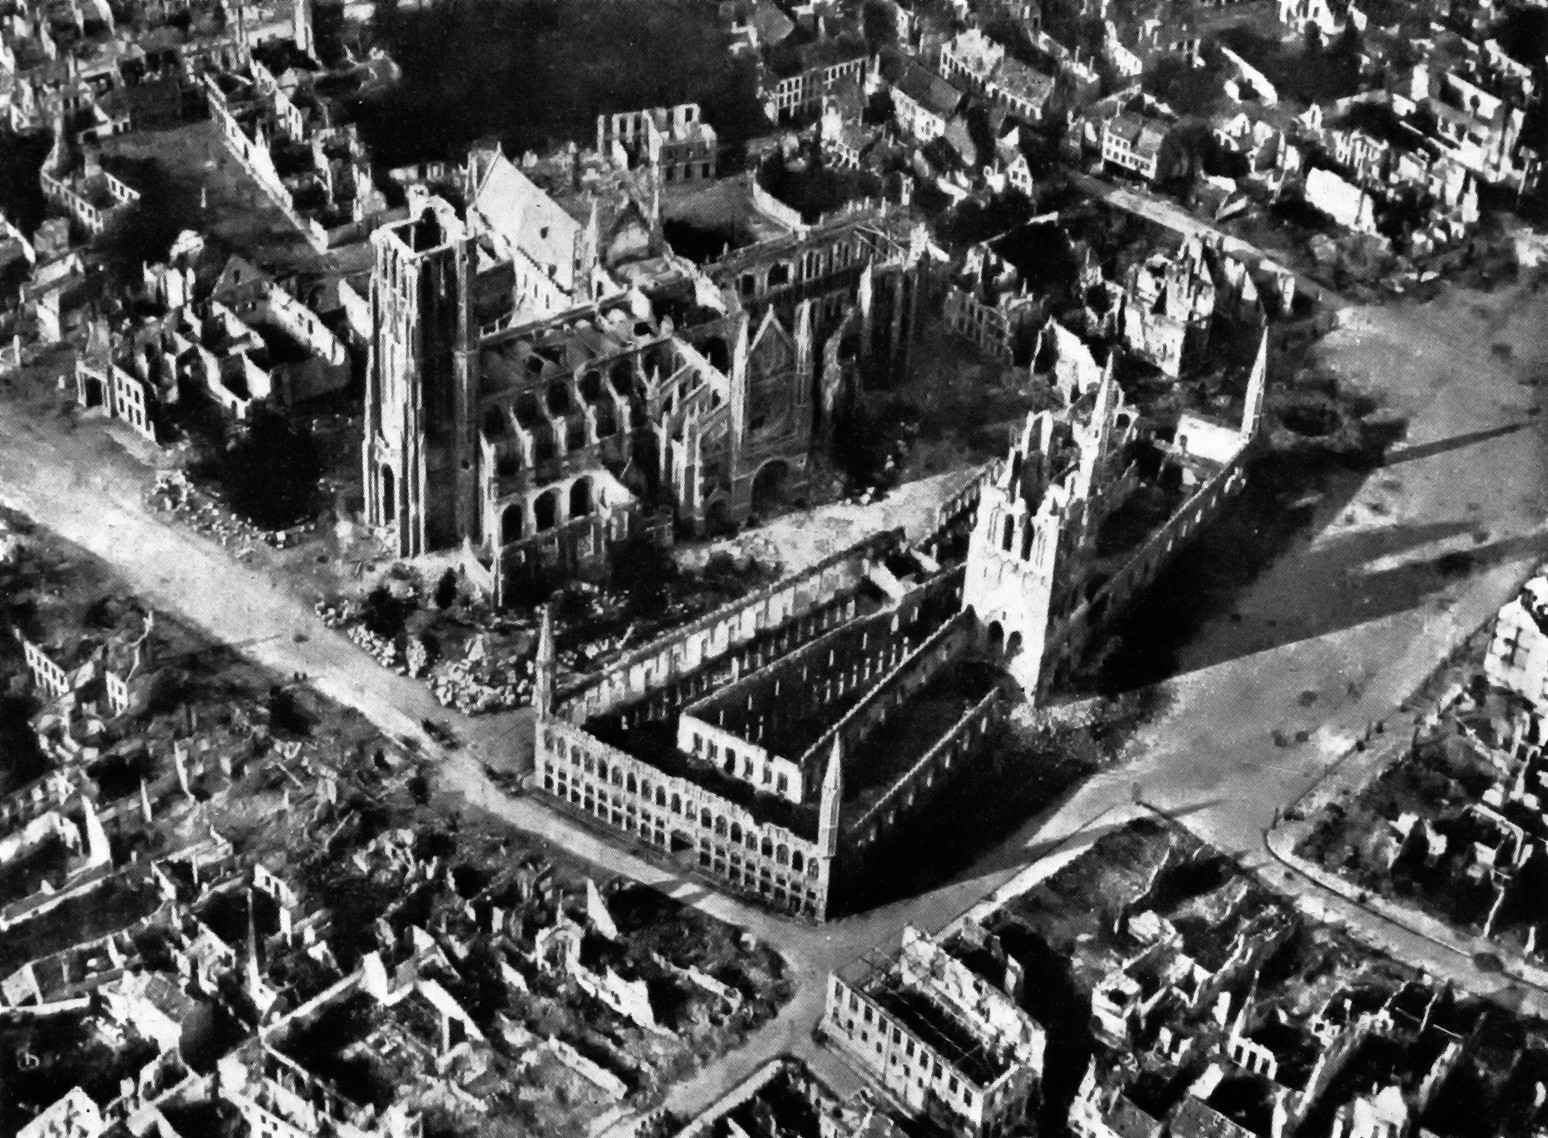 Aerial photo of Ypres Belgium, 1917